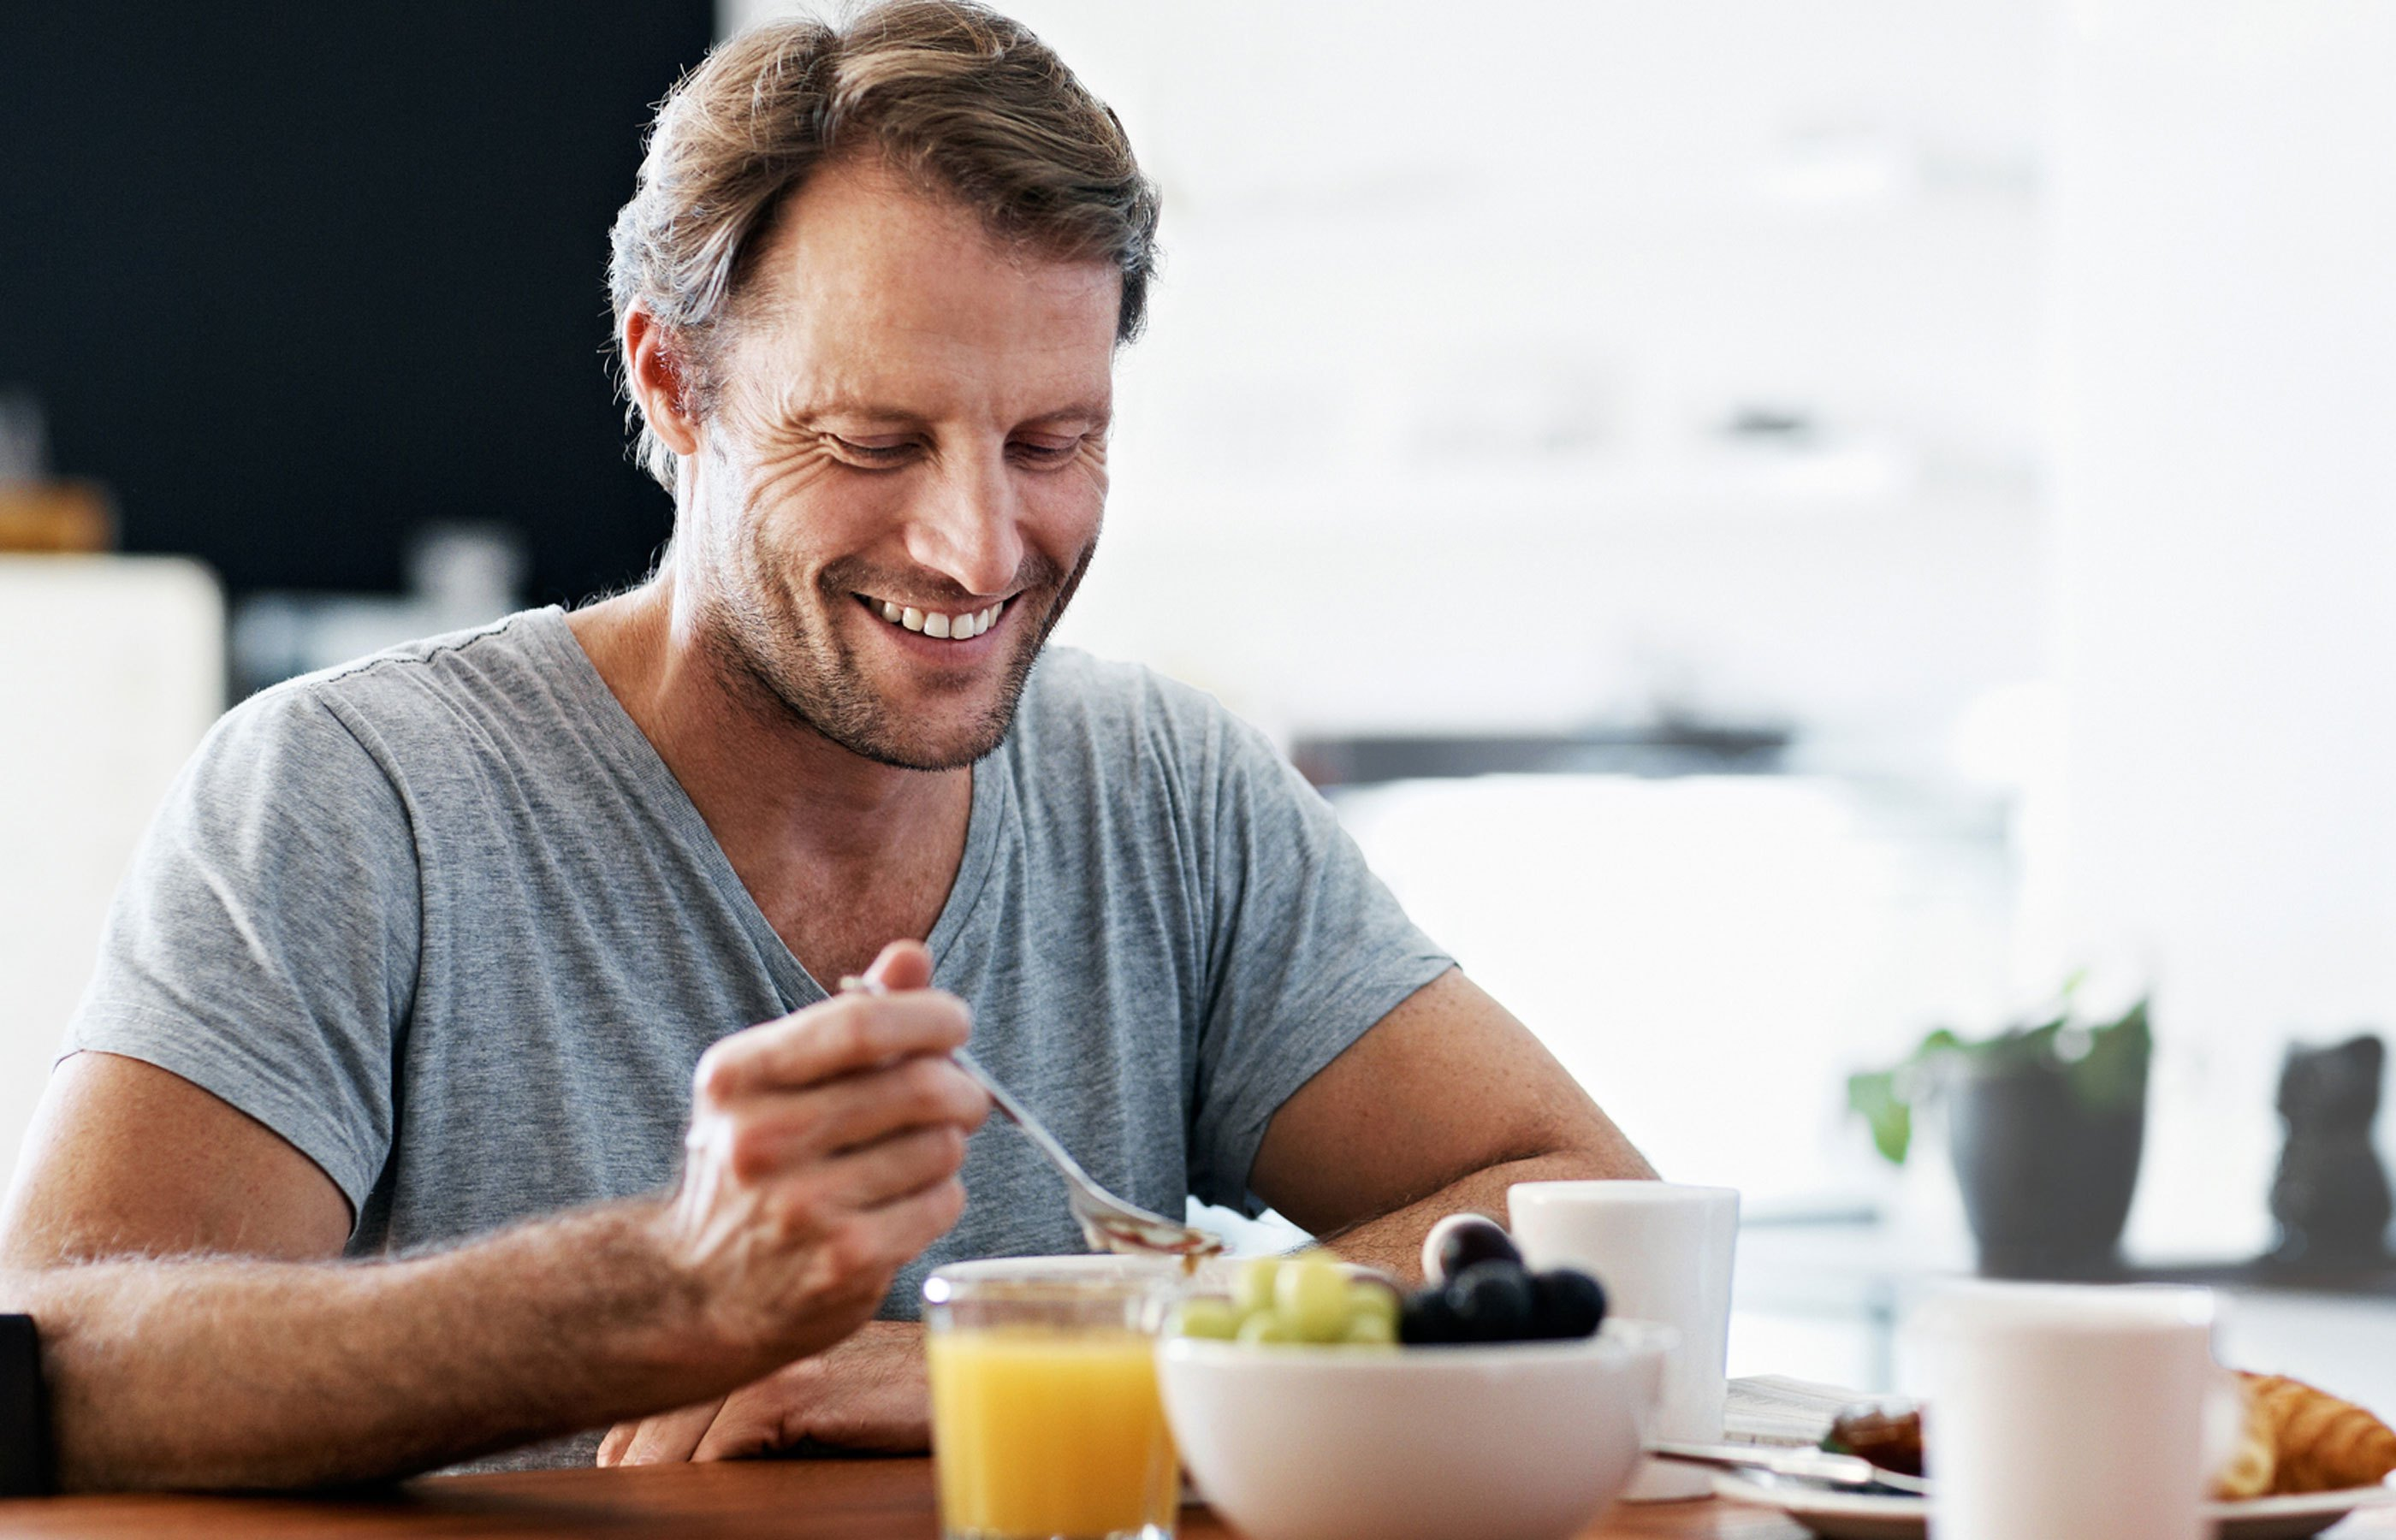 How To Boost Sperm Count And Male Fertility?